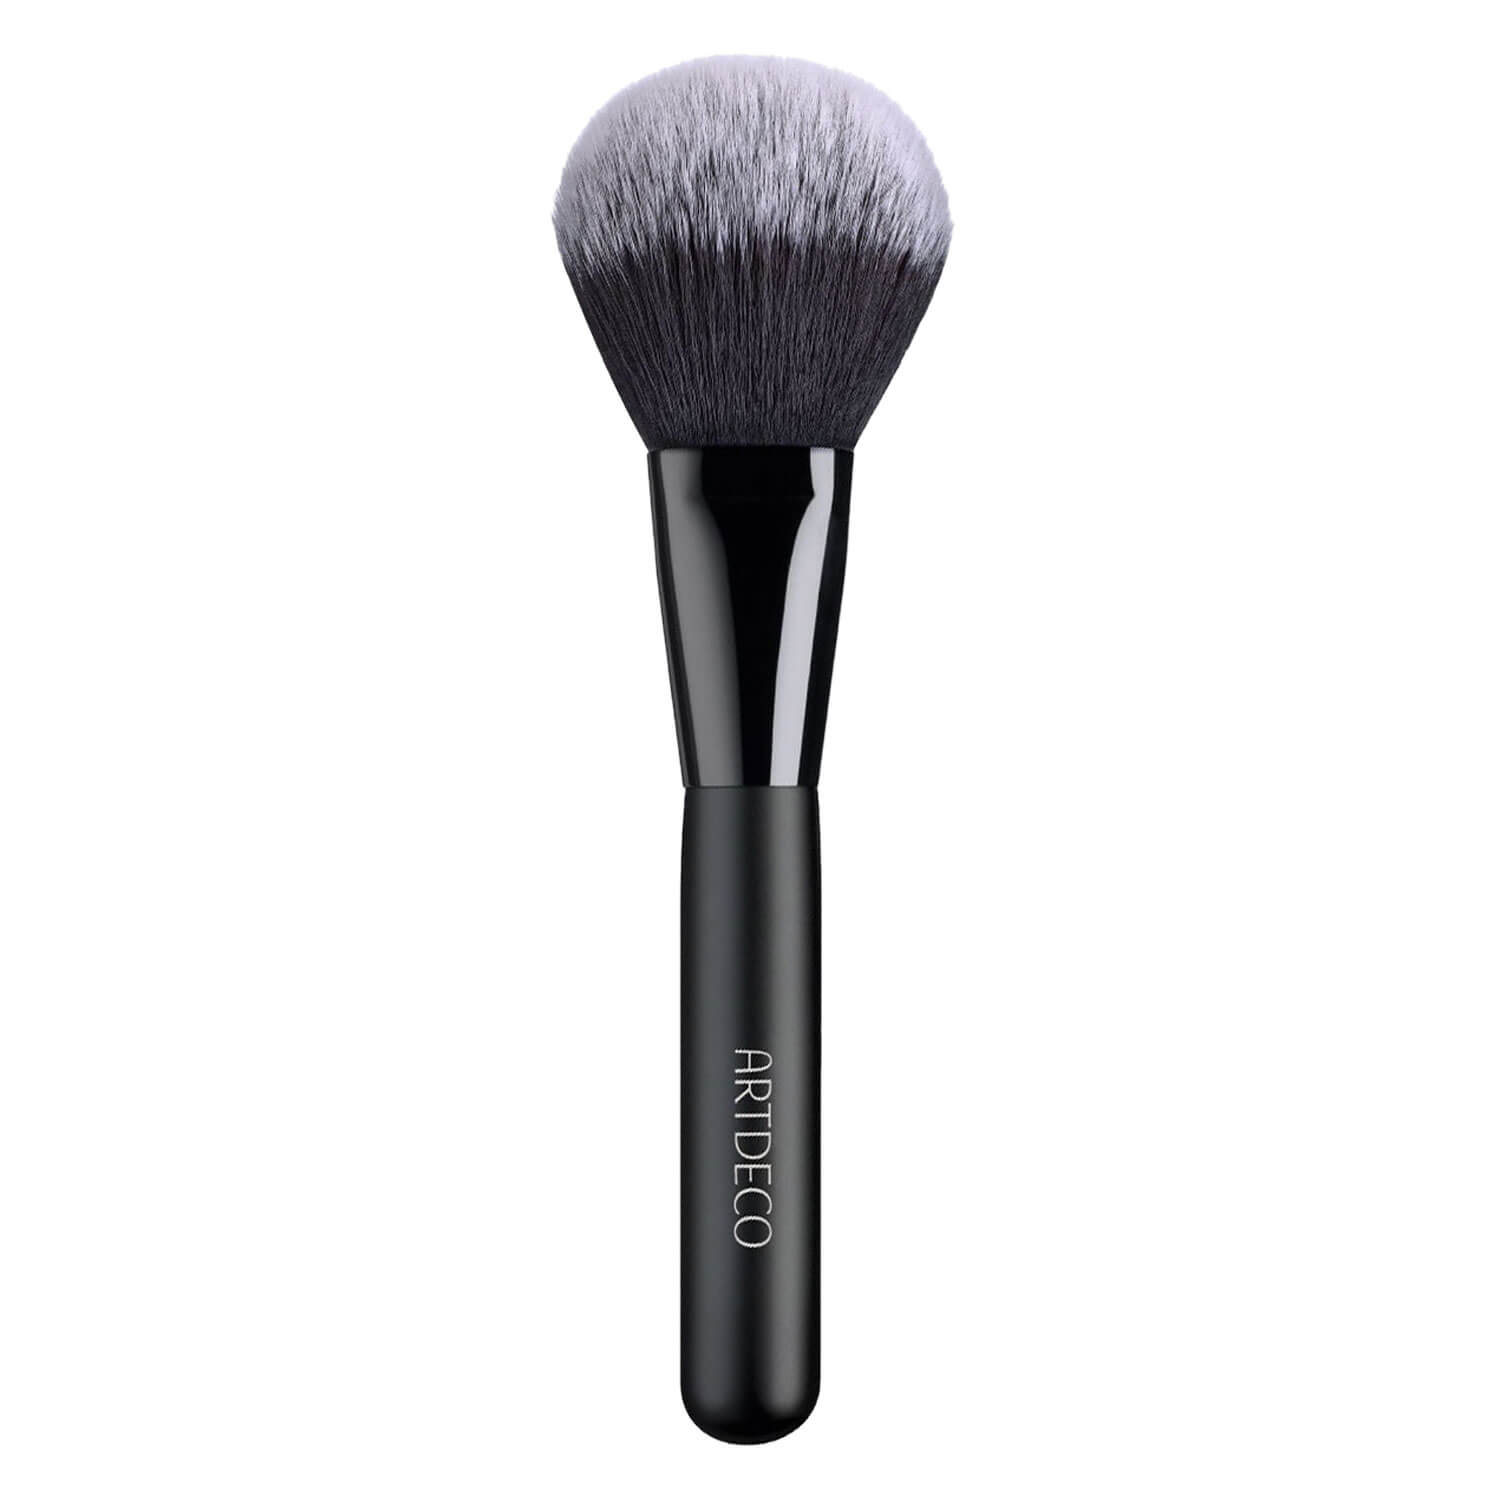 Artdeco Tools - Powder Brush